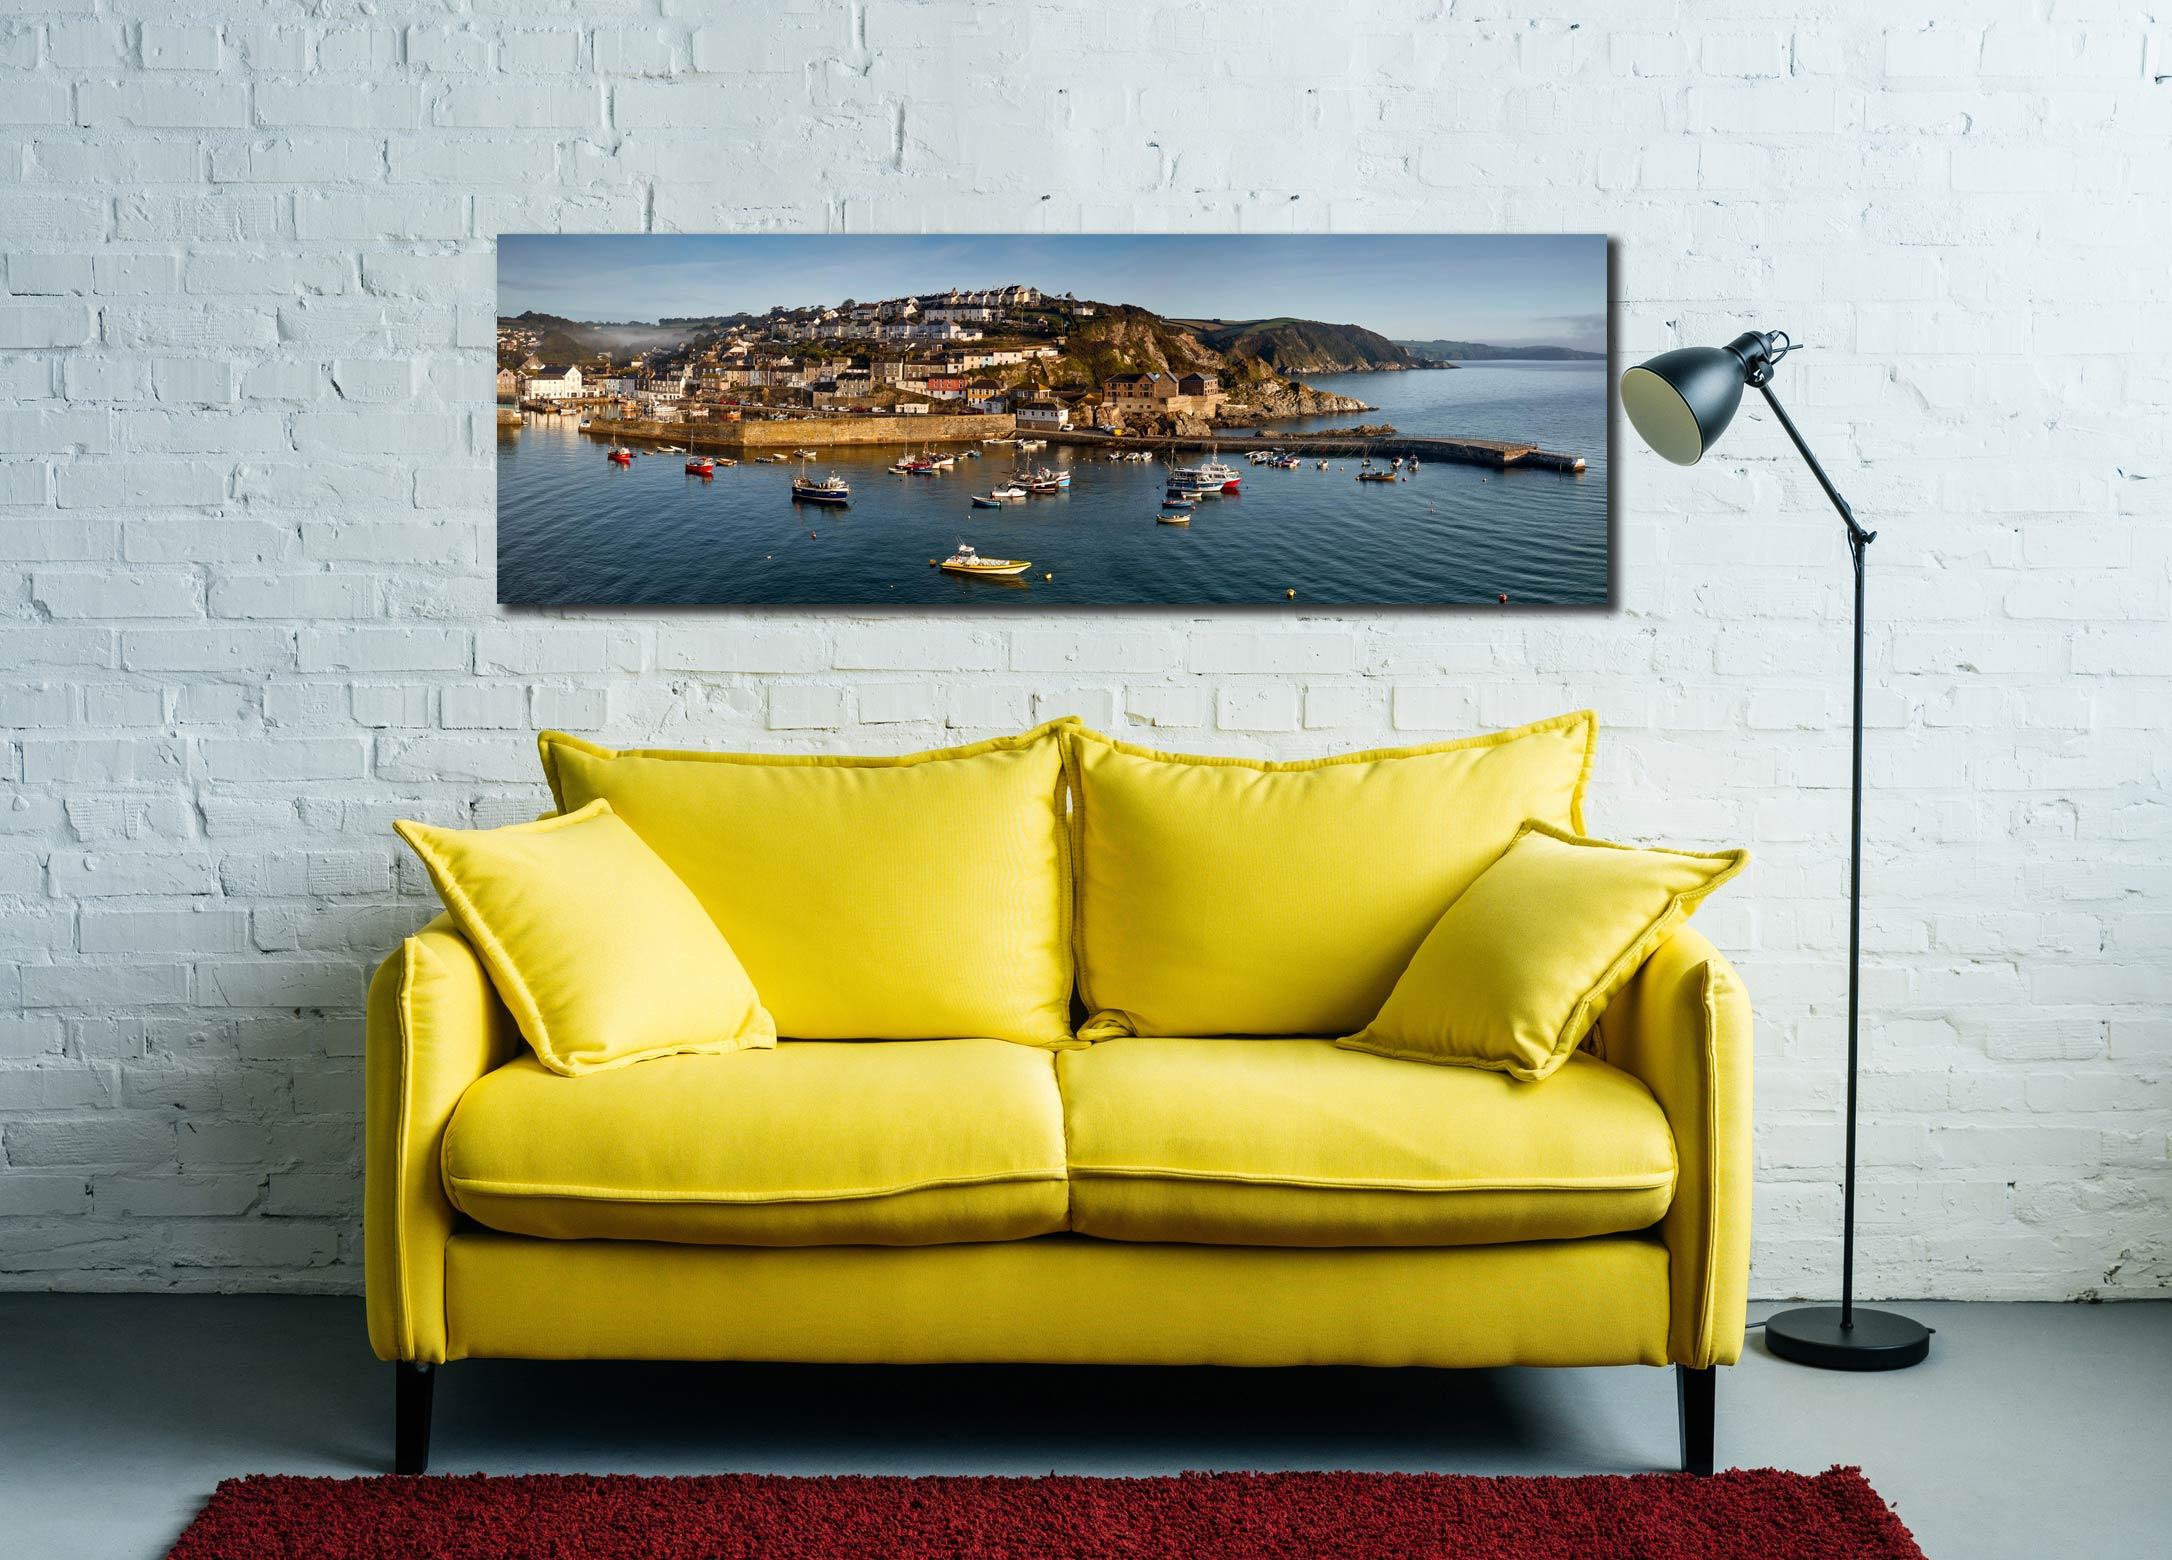 Early morning at Mevagissy on the south coast of Cornwall, just after the mists have burned away, retreating up the valley - Print Aluminium Backing With Acrylic Glazing on Wall